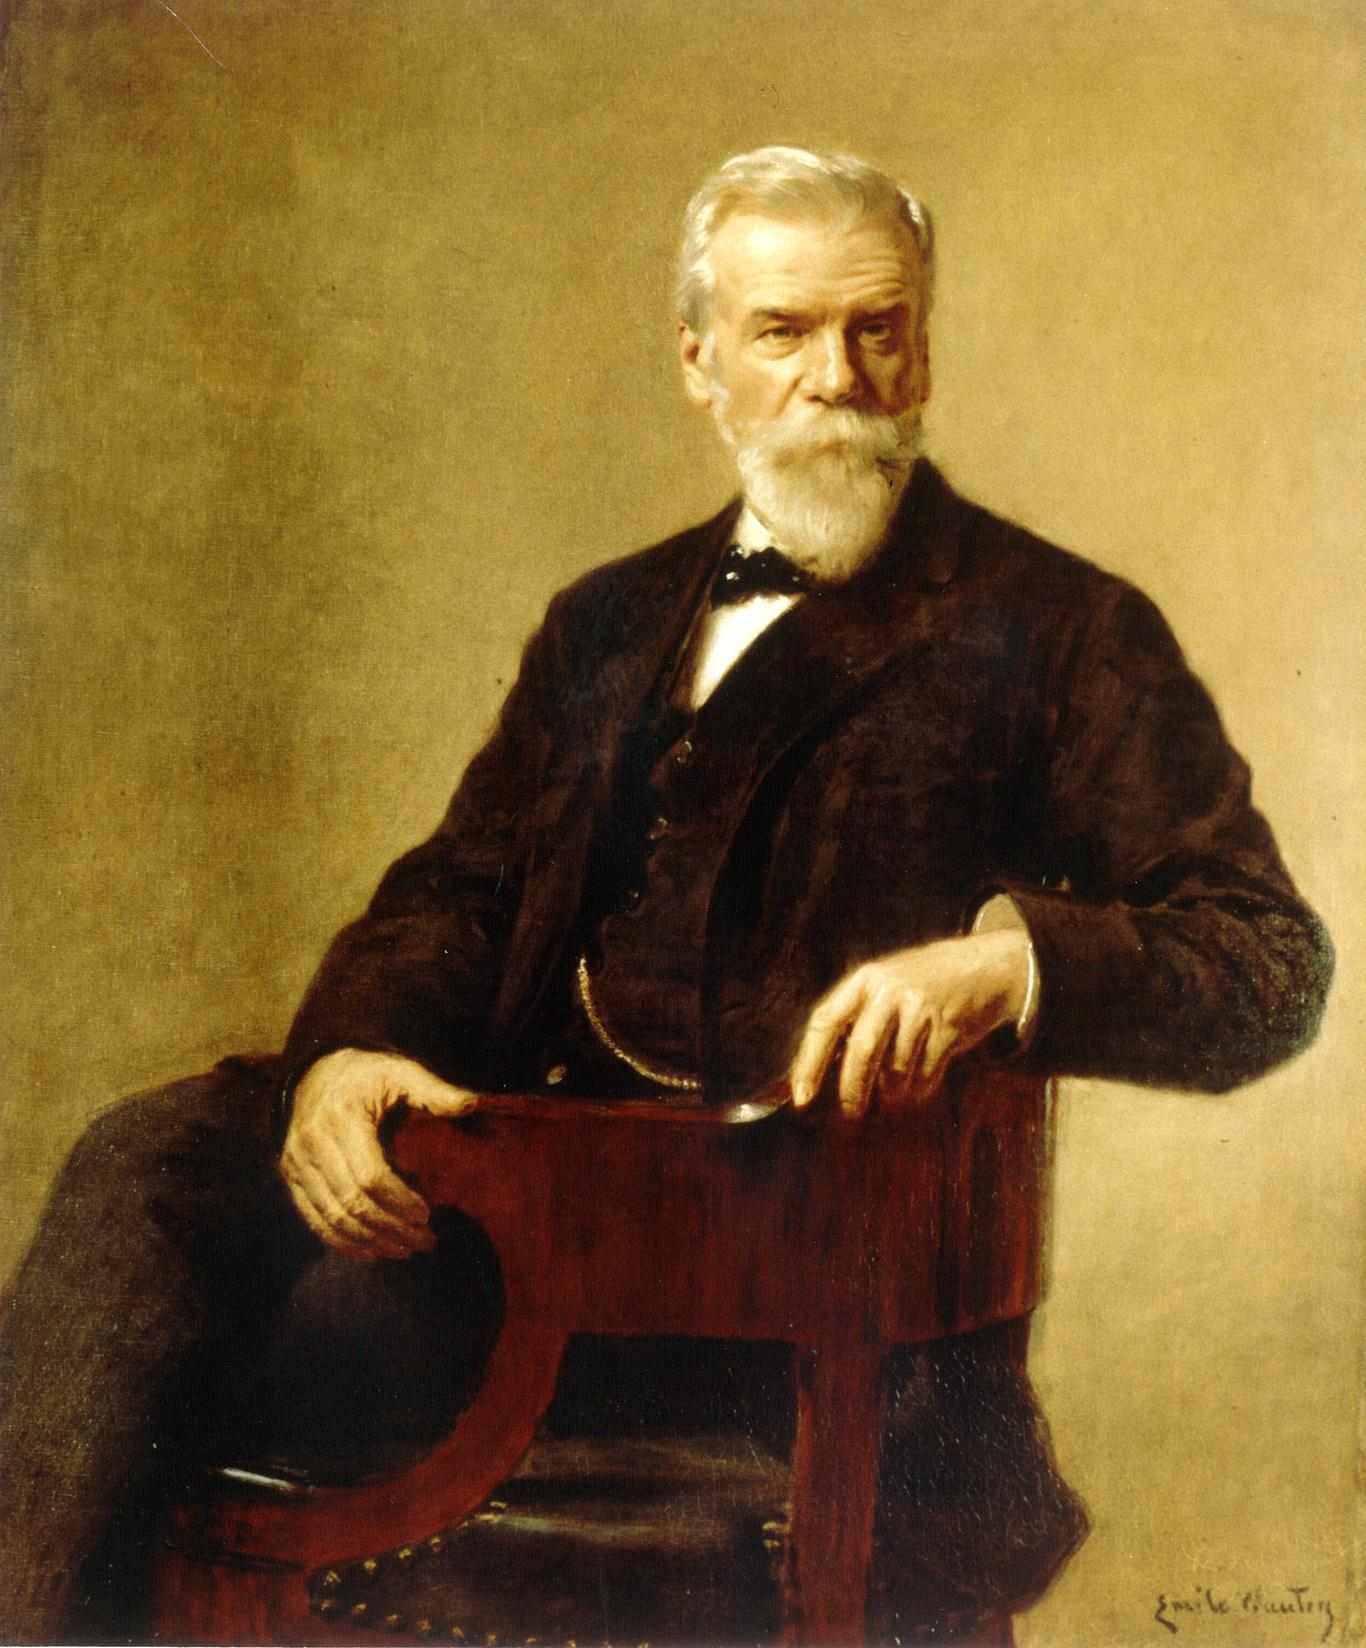 Ernest Solvay by E. Wauters